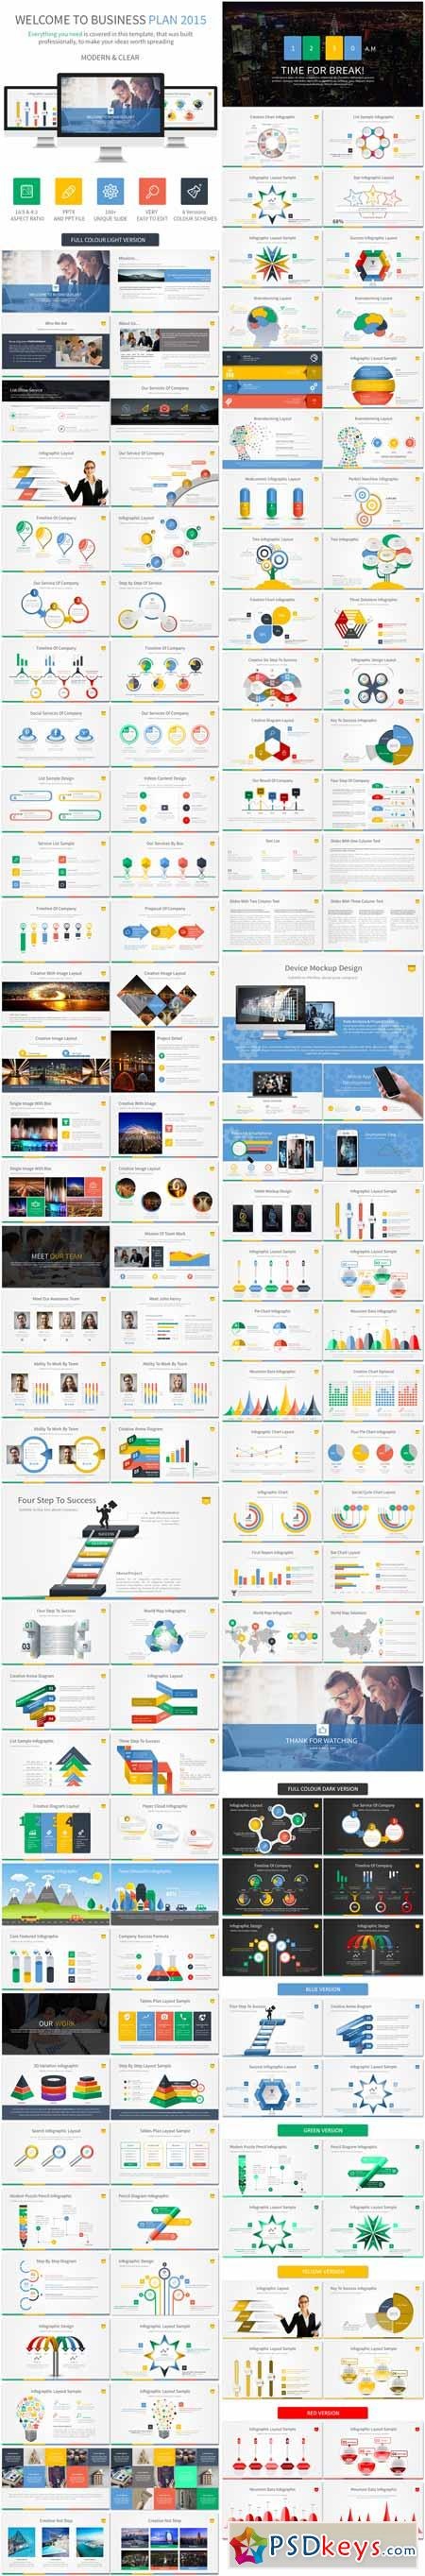 Business Plan 2015 Powerpoint Template 11318924